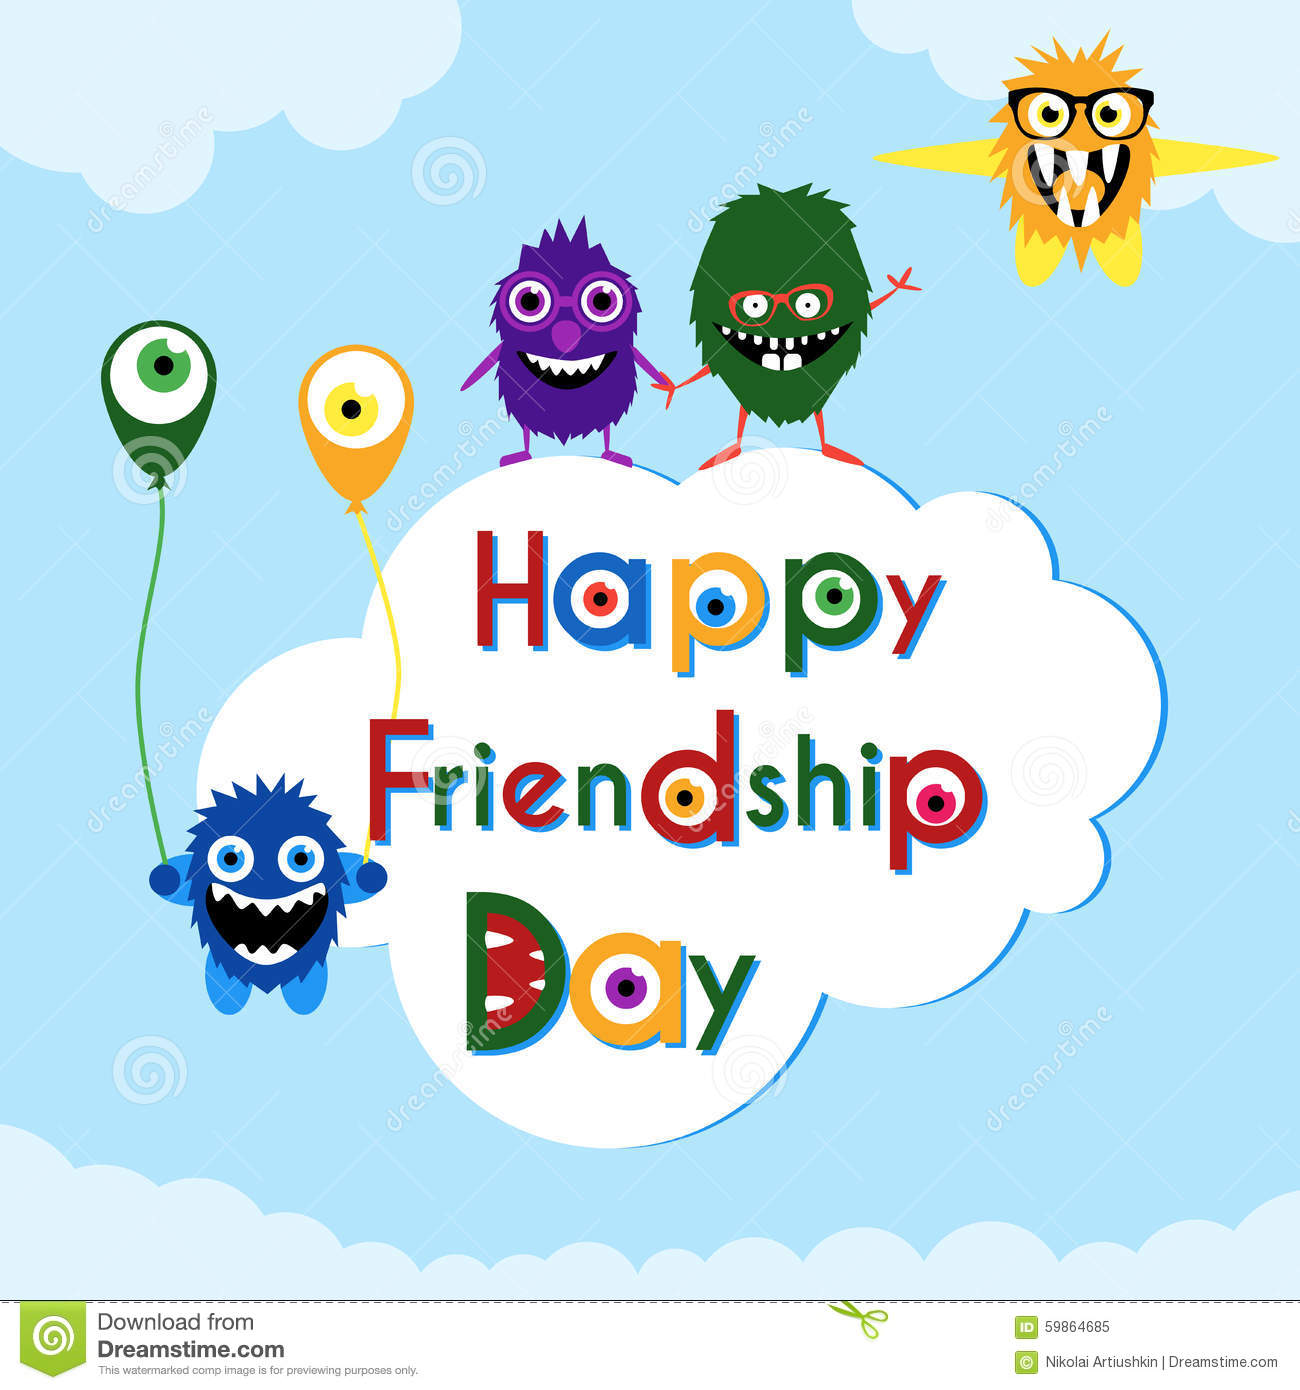 Friendship Day Greeting Card With Cute Monsters Stock Vector